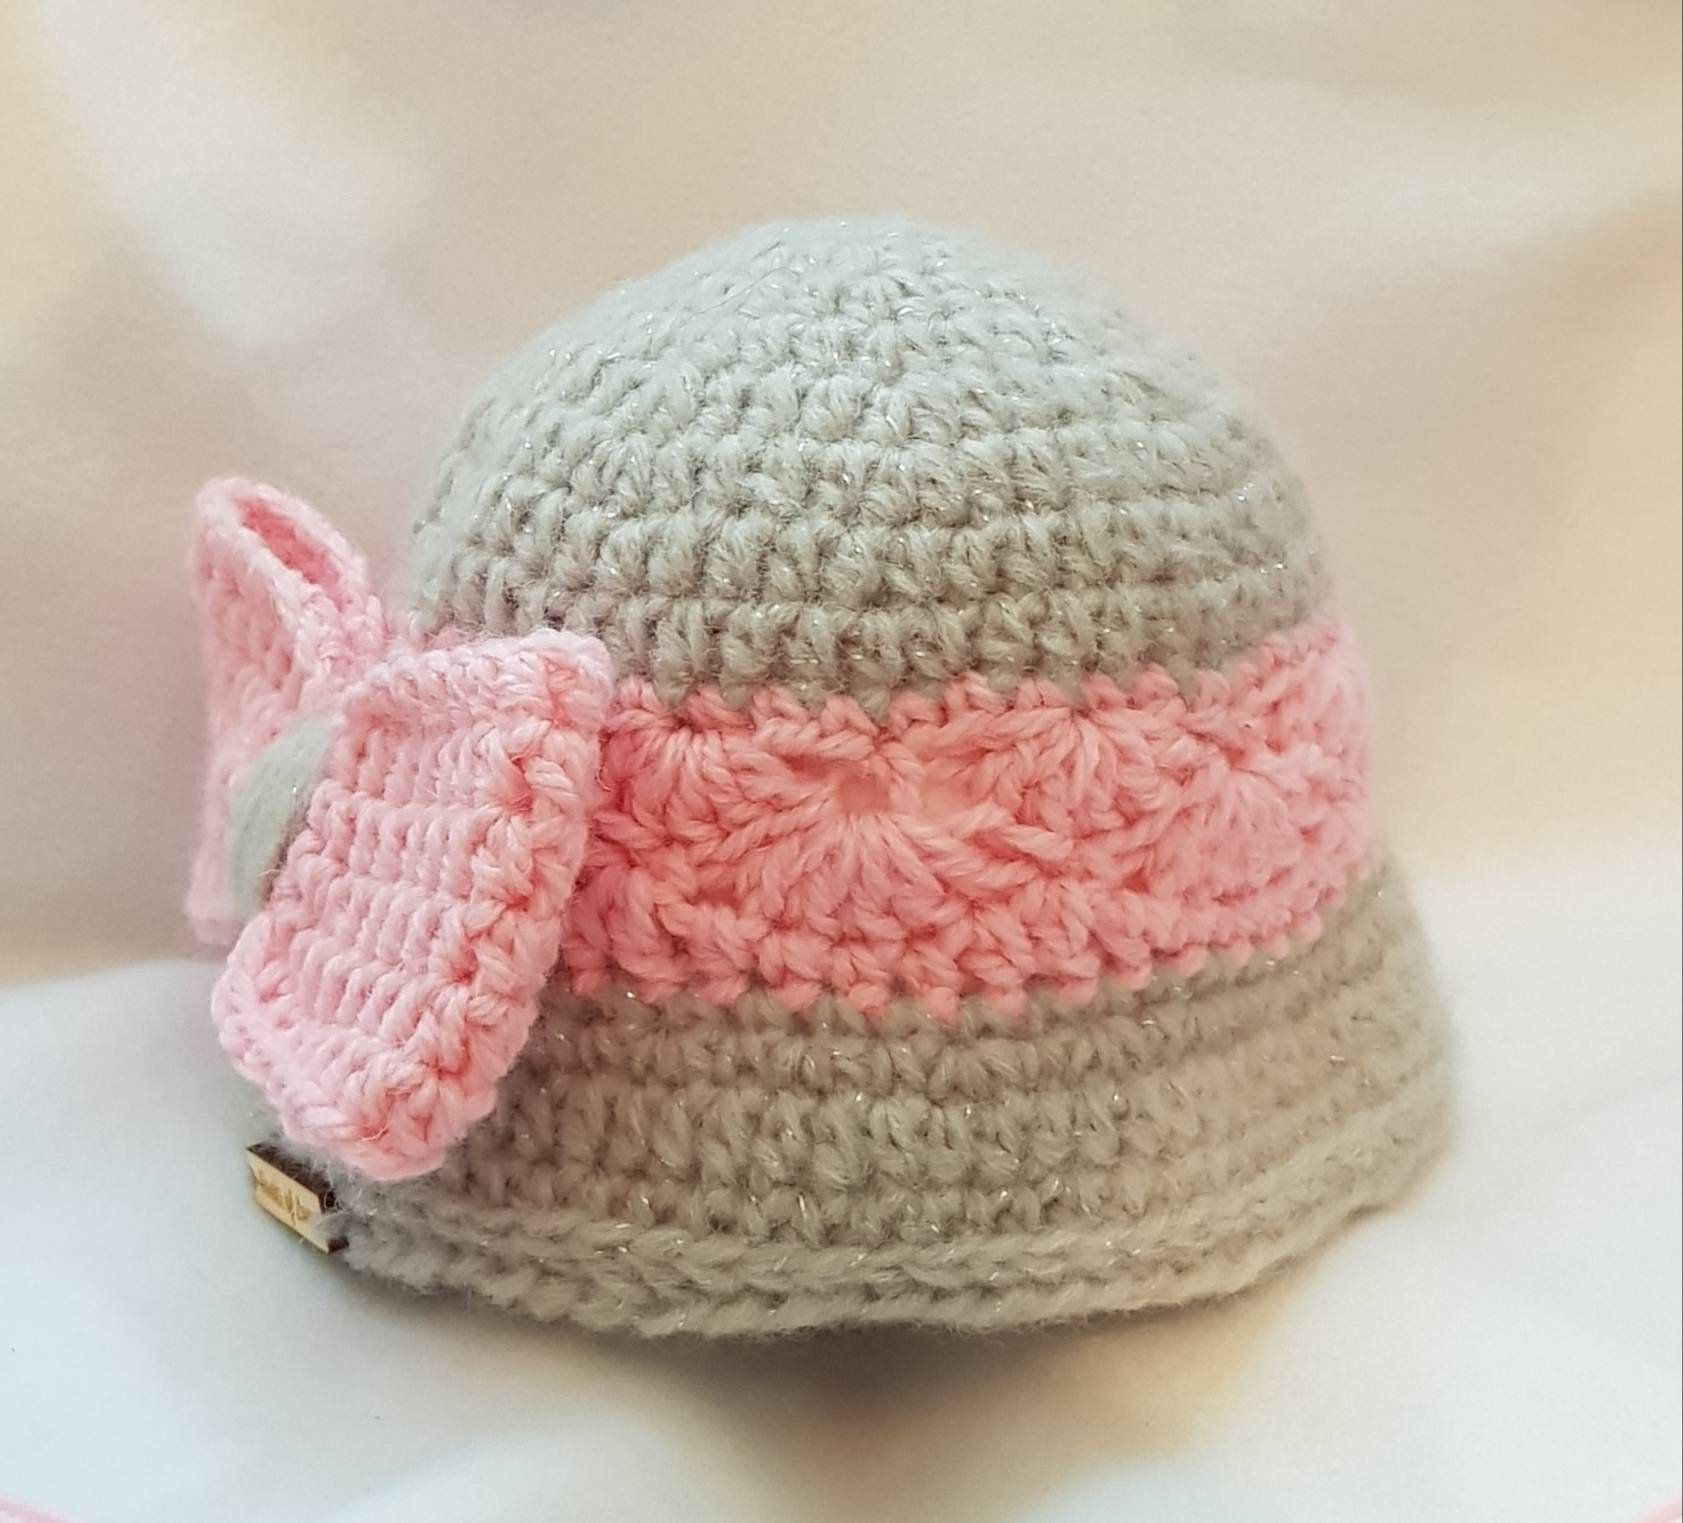 78038ceac4d Baby Girls Winter Cloche style hat - Baby girl gift - Baby Girl hat -  Newborn